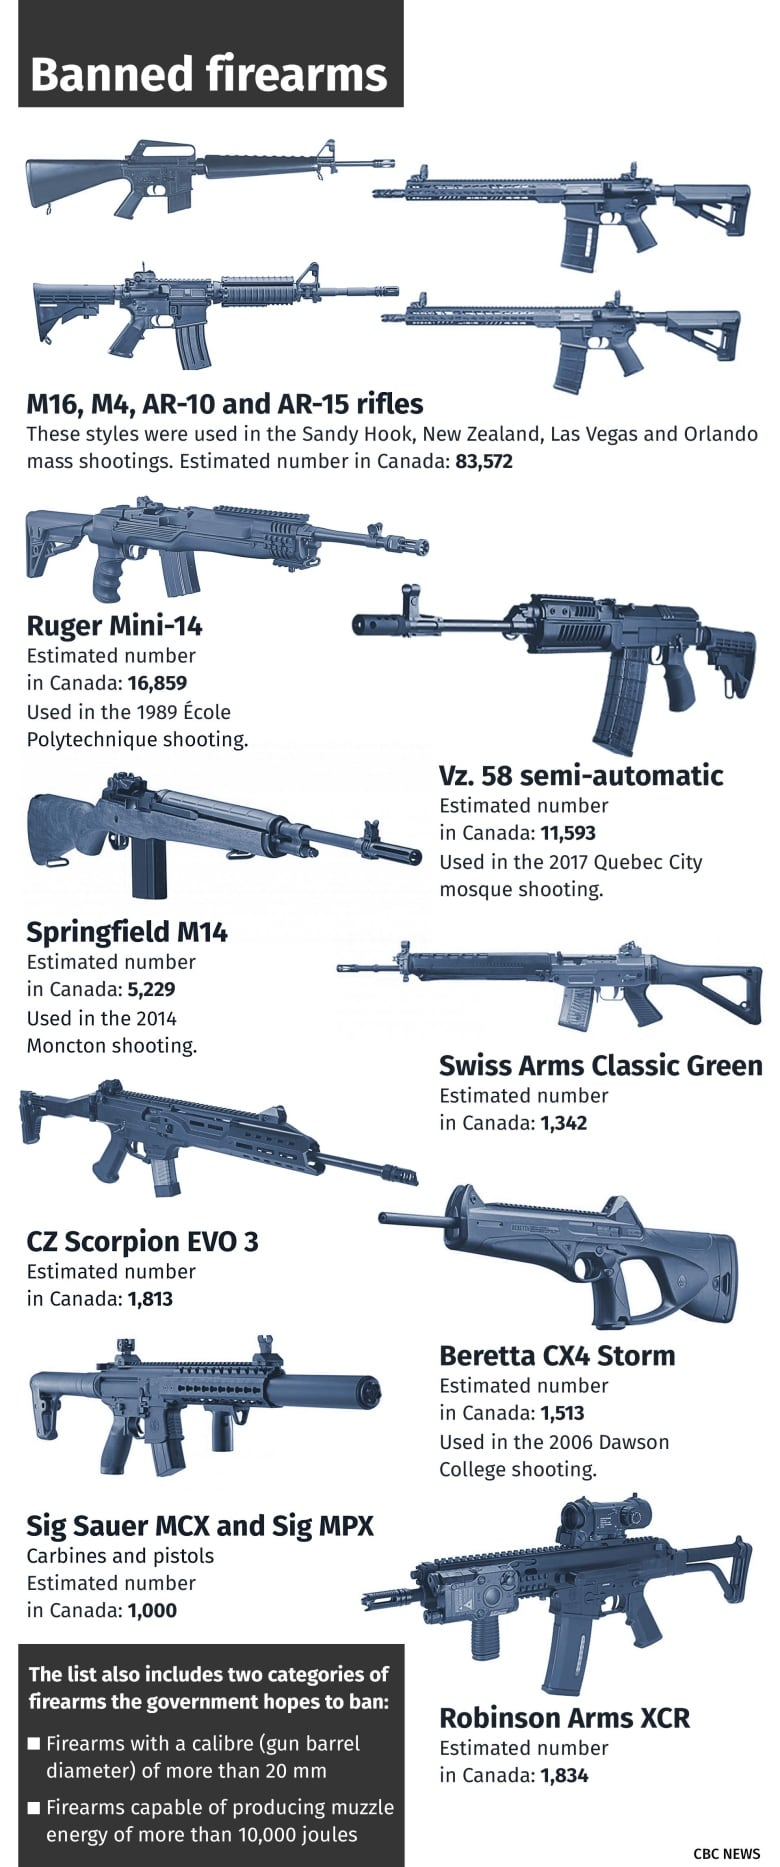 Some Alberta gun enthusiasts say ban on 'assault-style' firearms won't make Canada safer 2